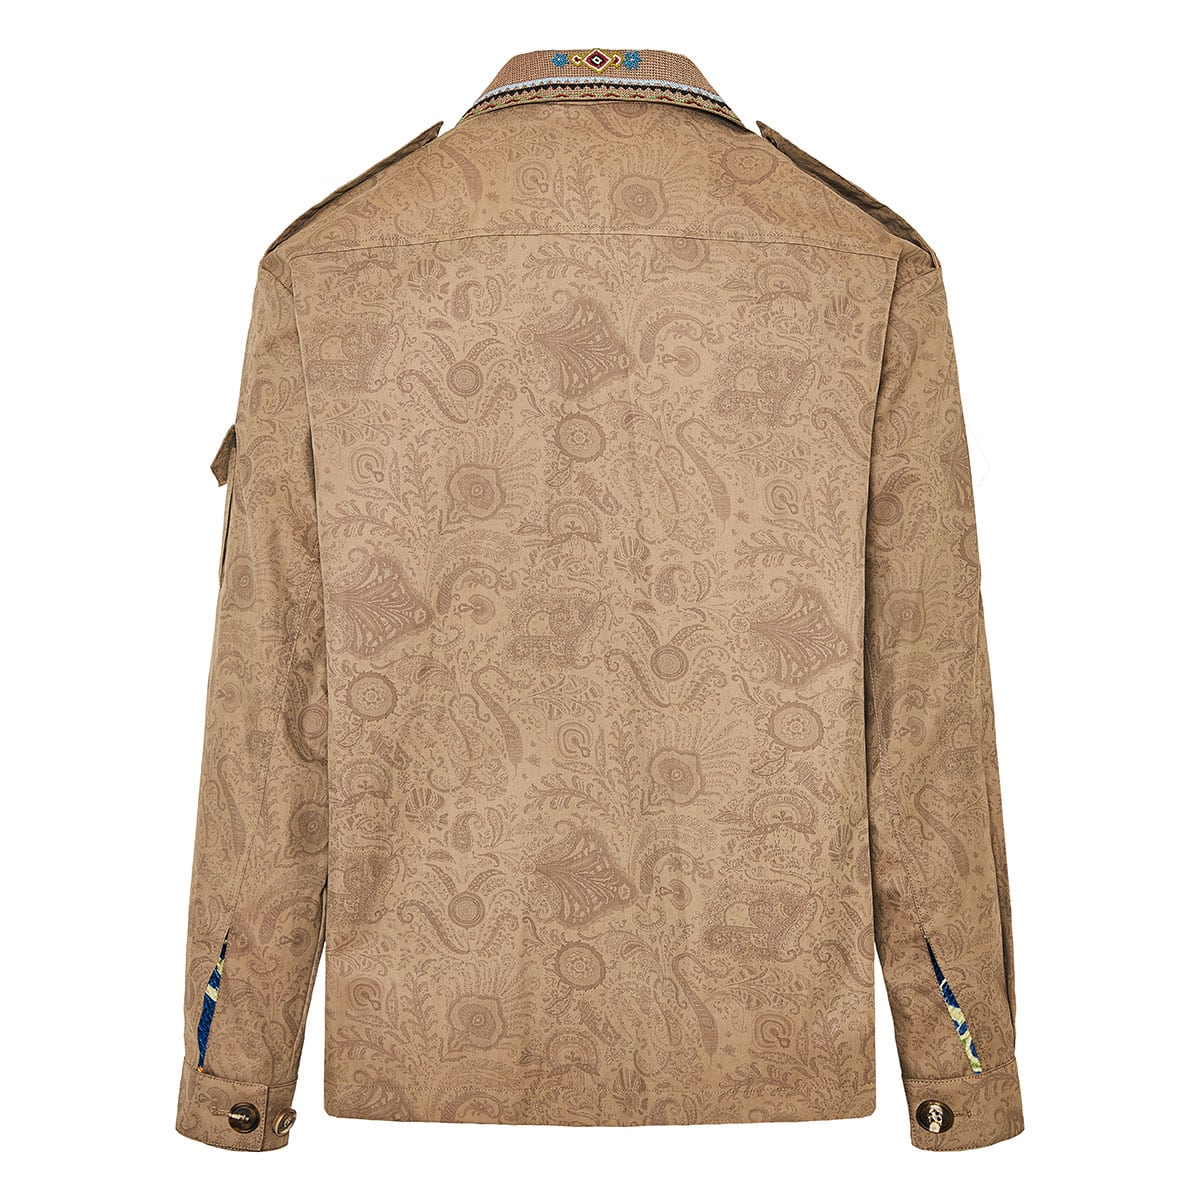 Embroidered paisley print jacket